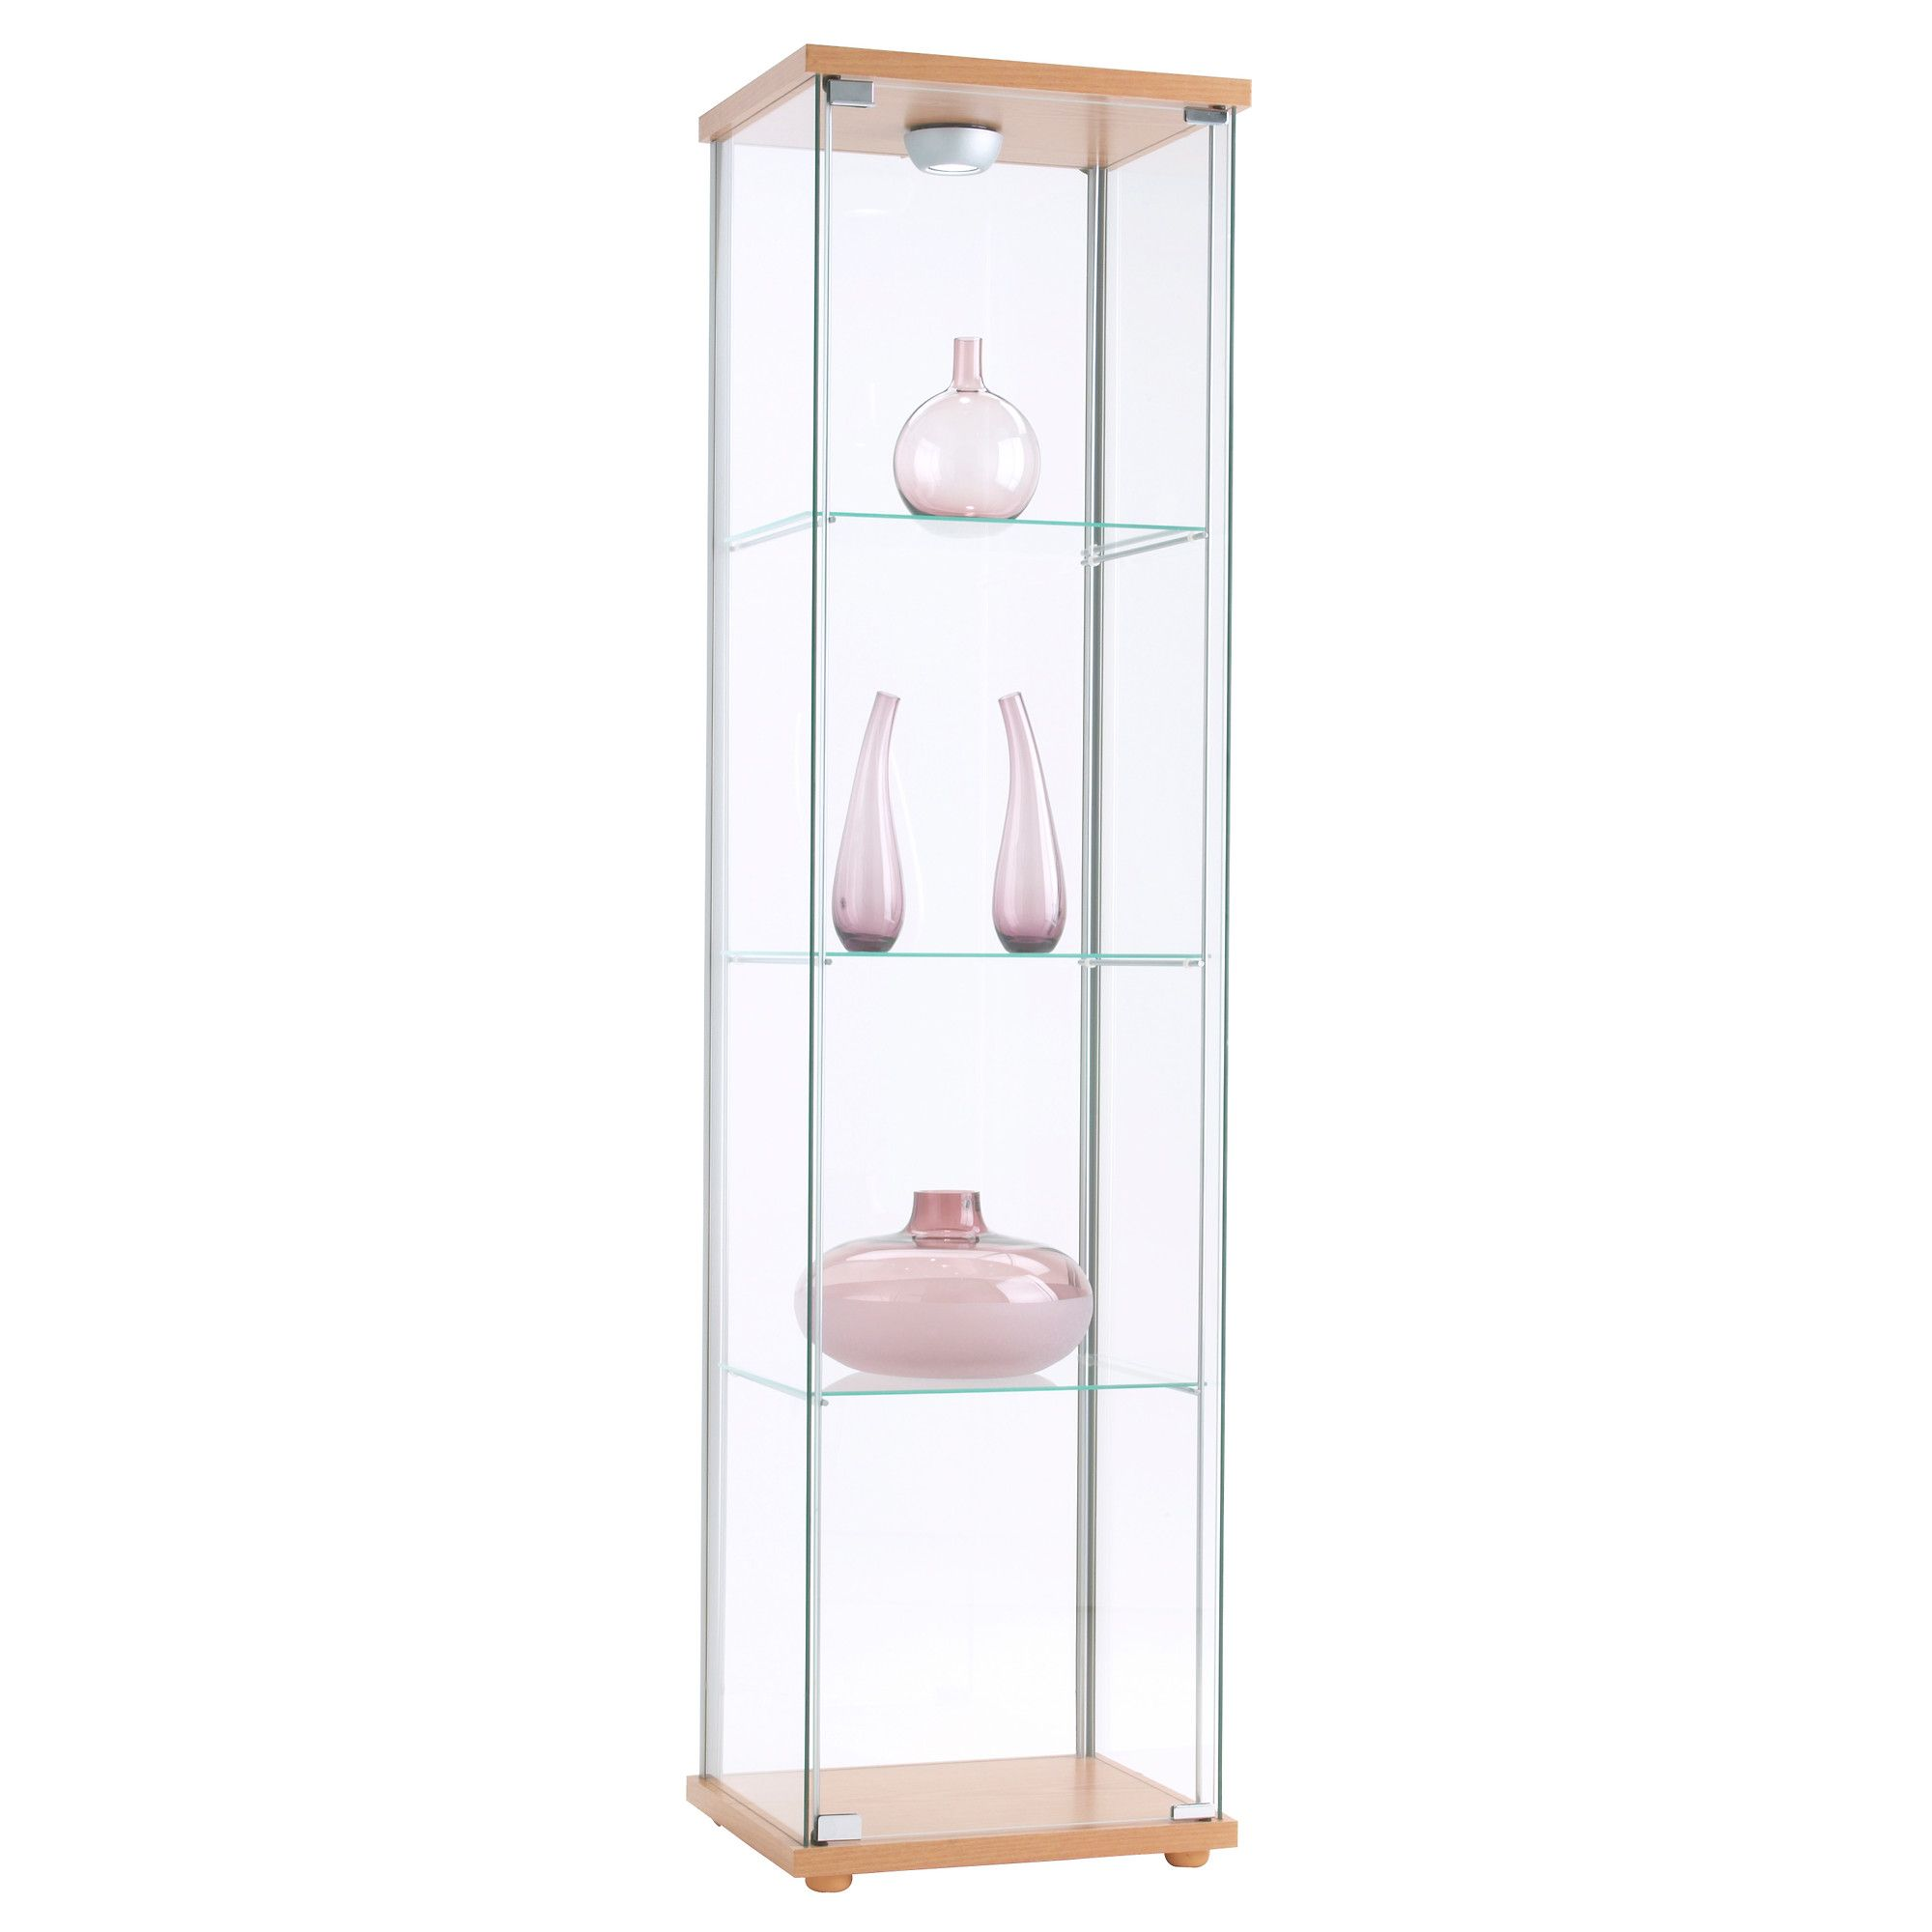 Detolf glass door cabinet black brown glass doors - Ikea glass cabinets ...